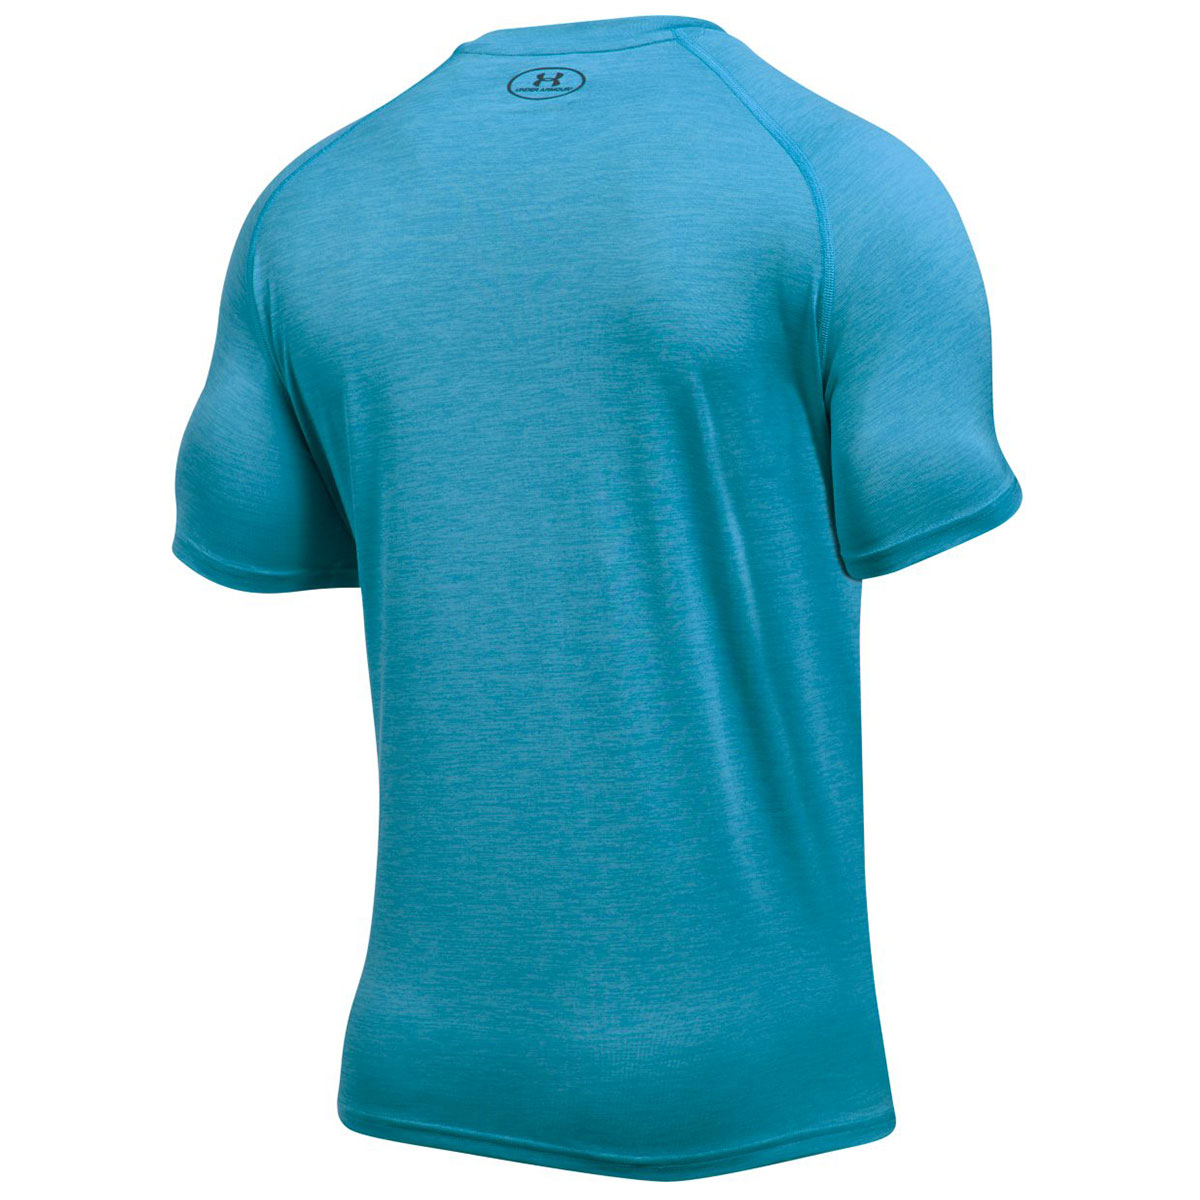 Under-Armour-Mens-UA-Tech-SS-T-Shirt-HeatGear-Training-31-OFF-RRP thumbnail 28